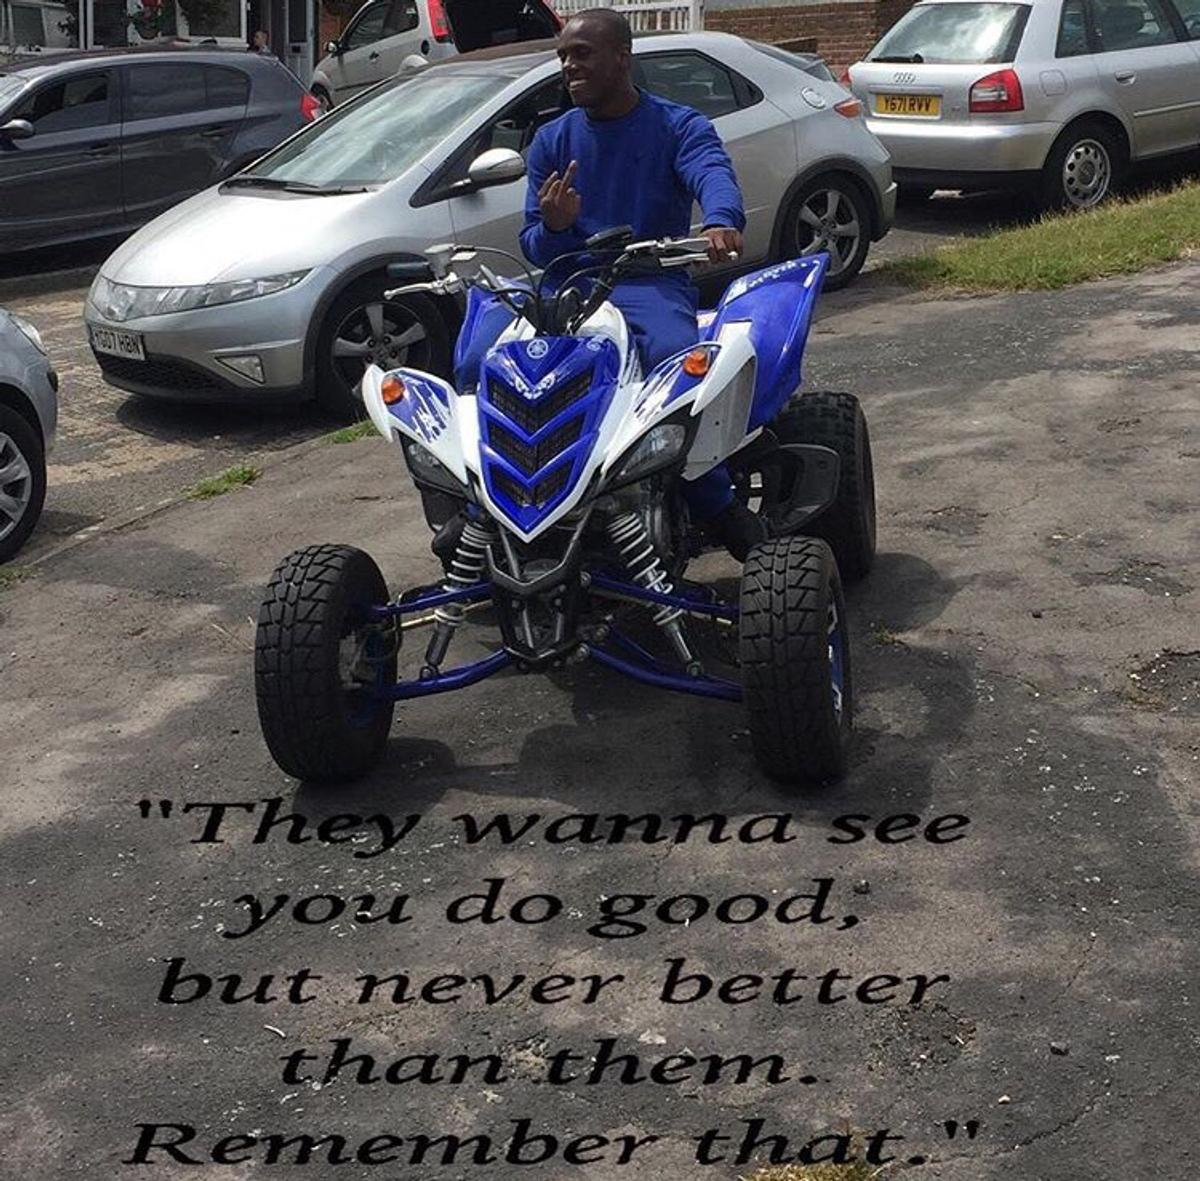 Yamaha raptor 700R road legal quad bike in Wycombe for £4,500 00 for